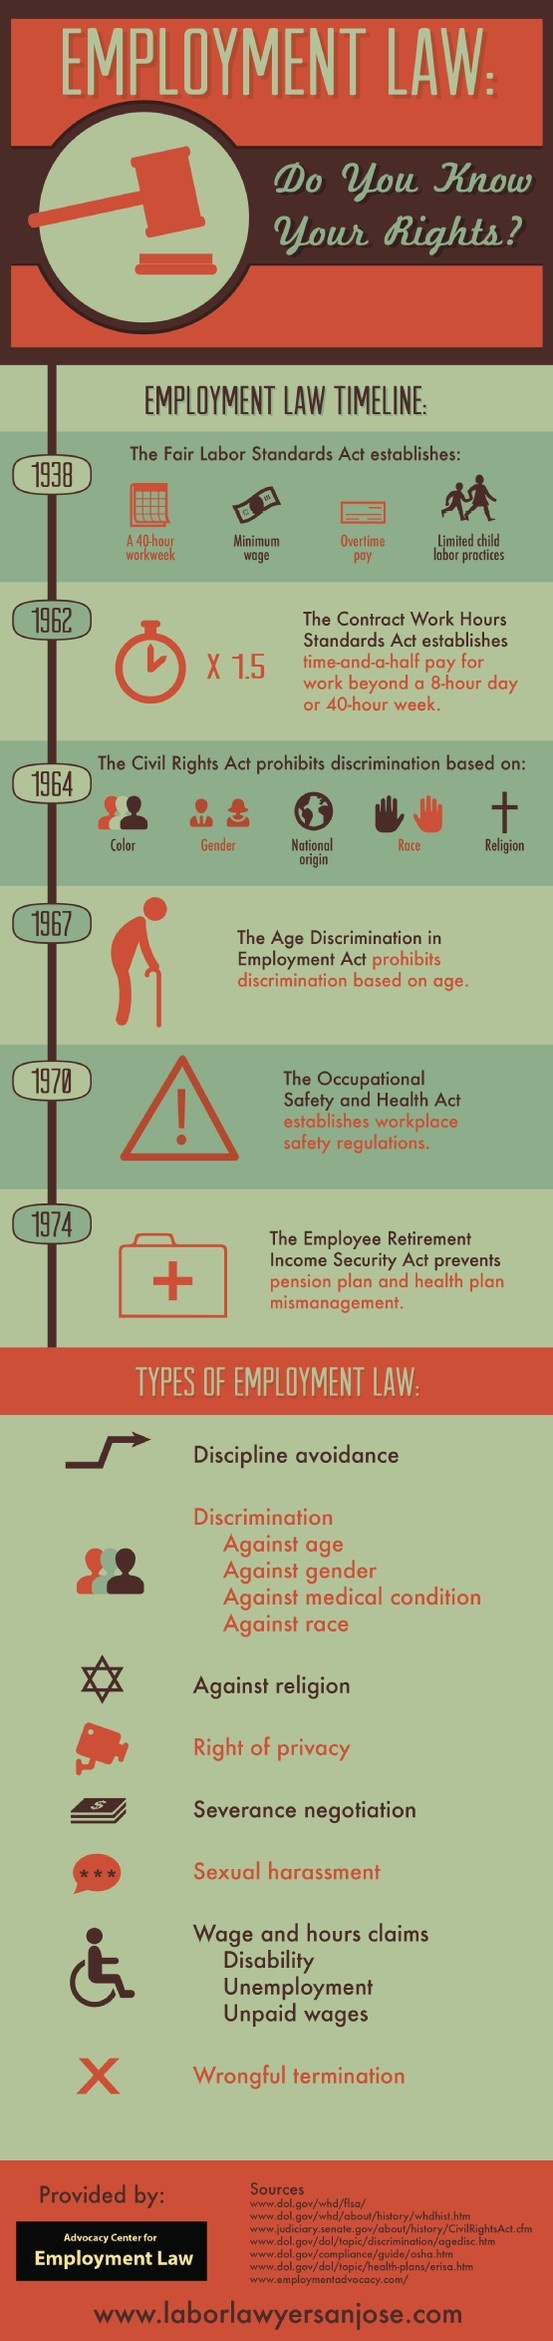 Employment Law Guide - United States Department of Labor